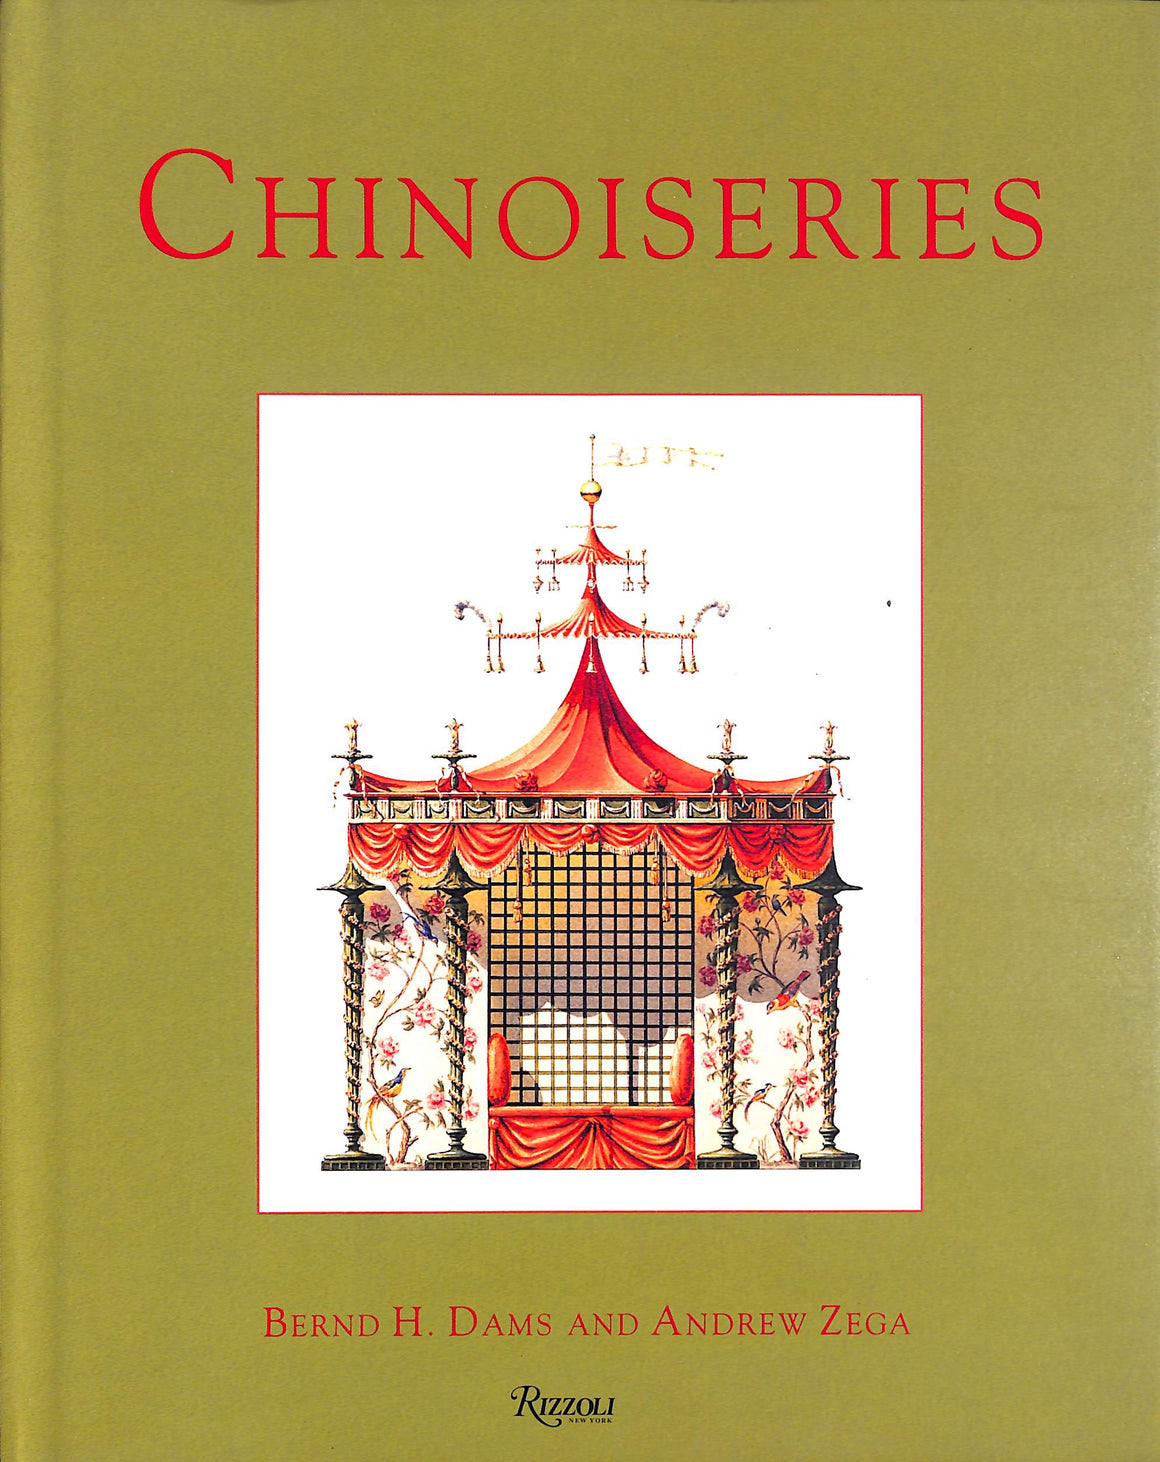 Chinoiseries by Bernd H. Dams and Andrew Zega